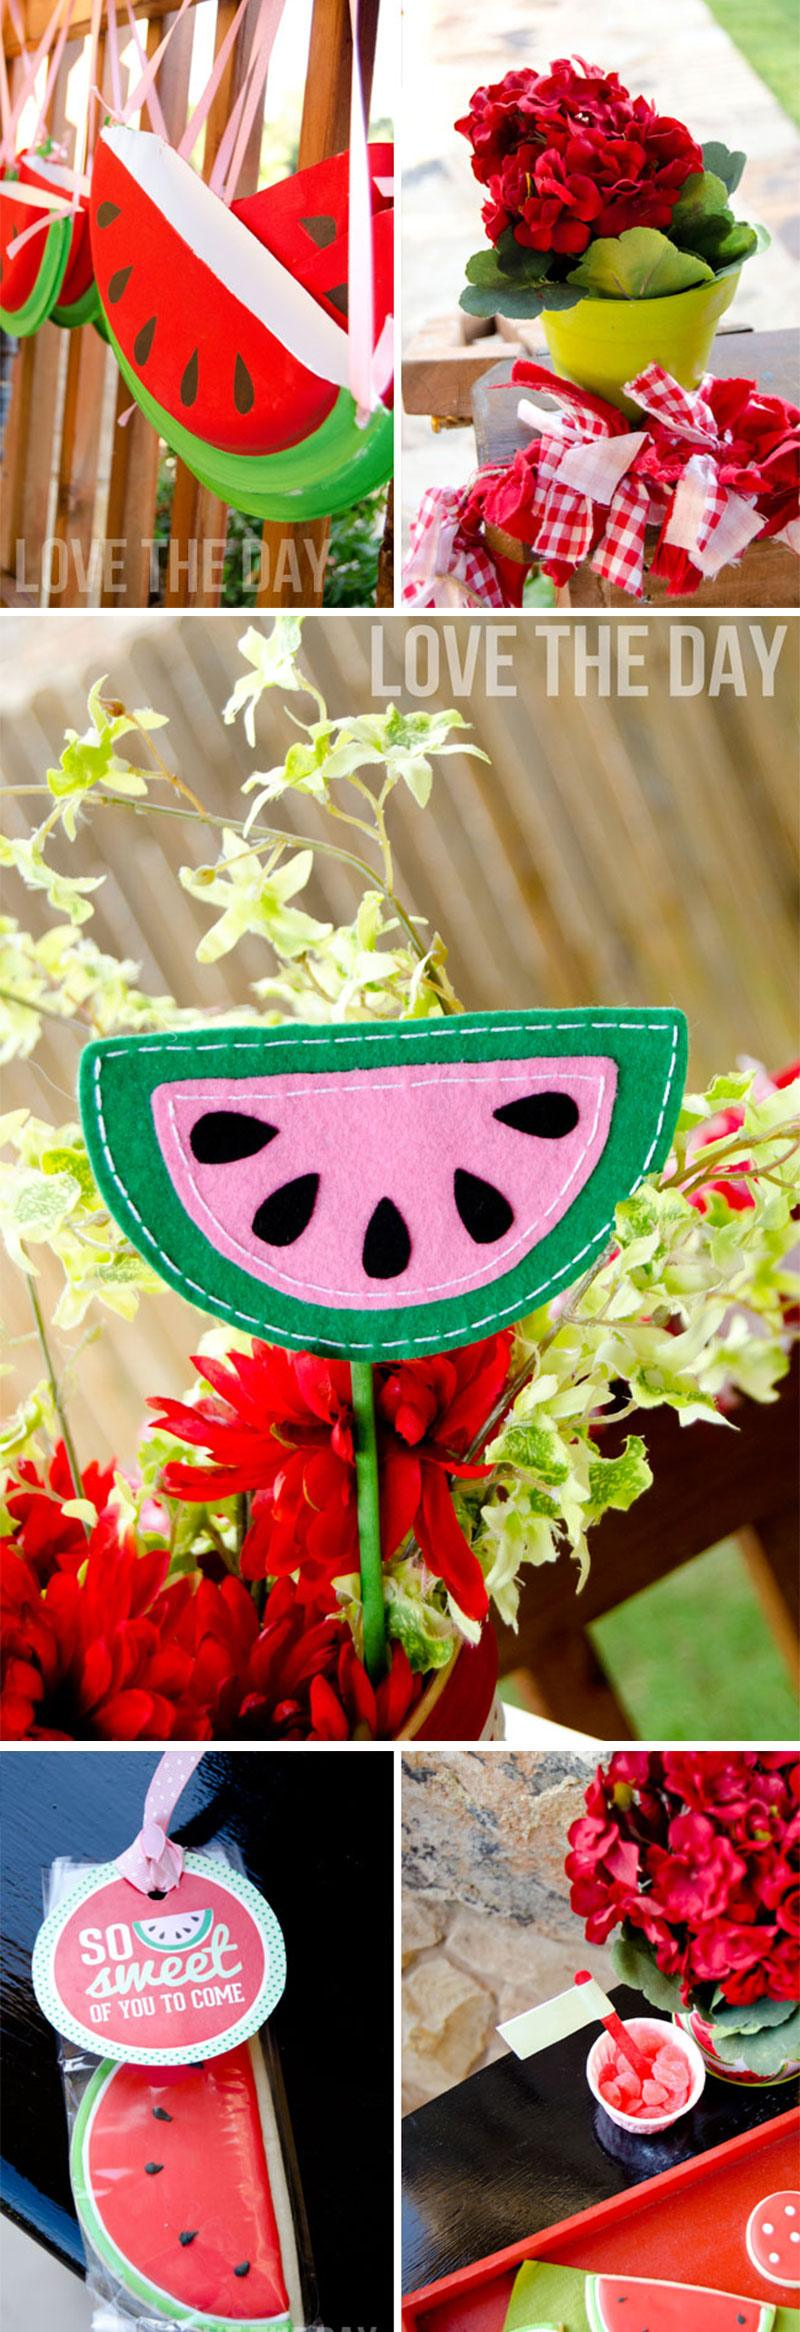 https://www.etsy.com/shop/lovetheday?ref=hdr_shop_menu&search_query=watermelon